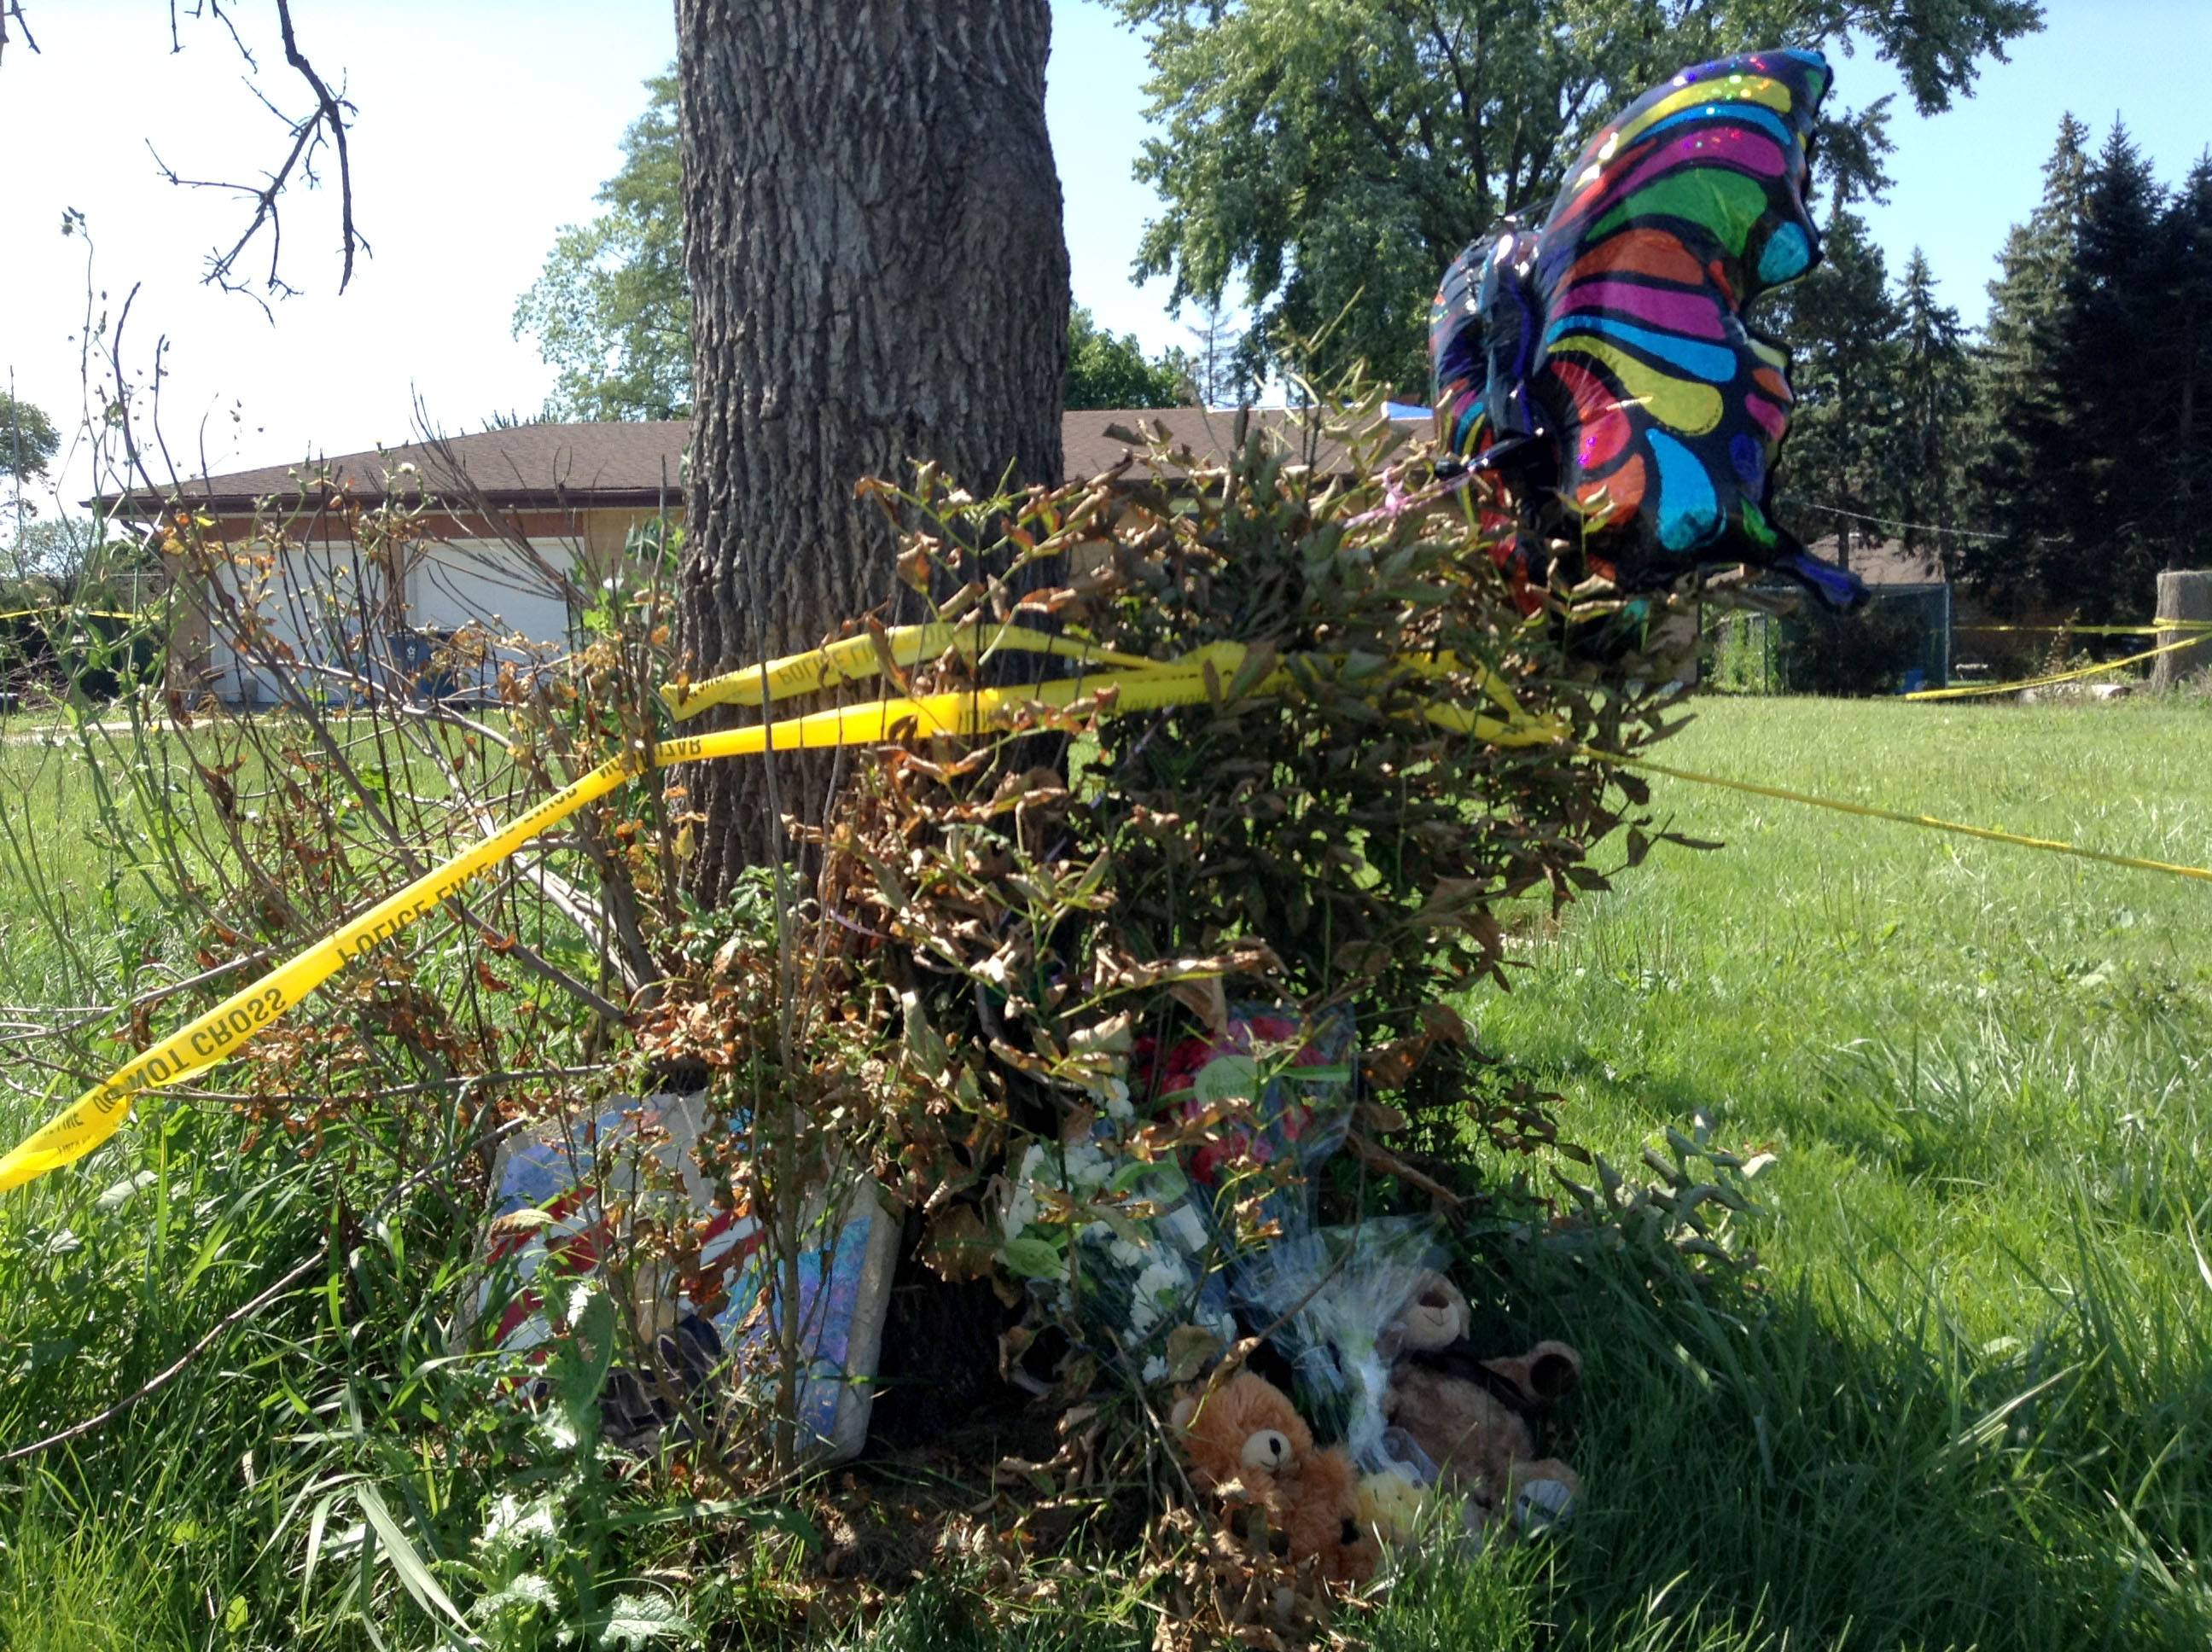 A makeshift memorial was set up Thursday morning outside the Bensenville house where a 4-year-old boy died Wednesday in a fire.